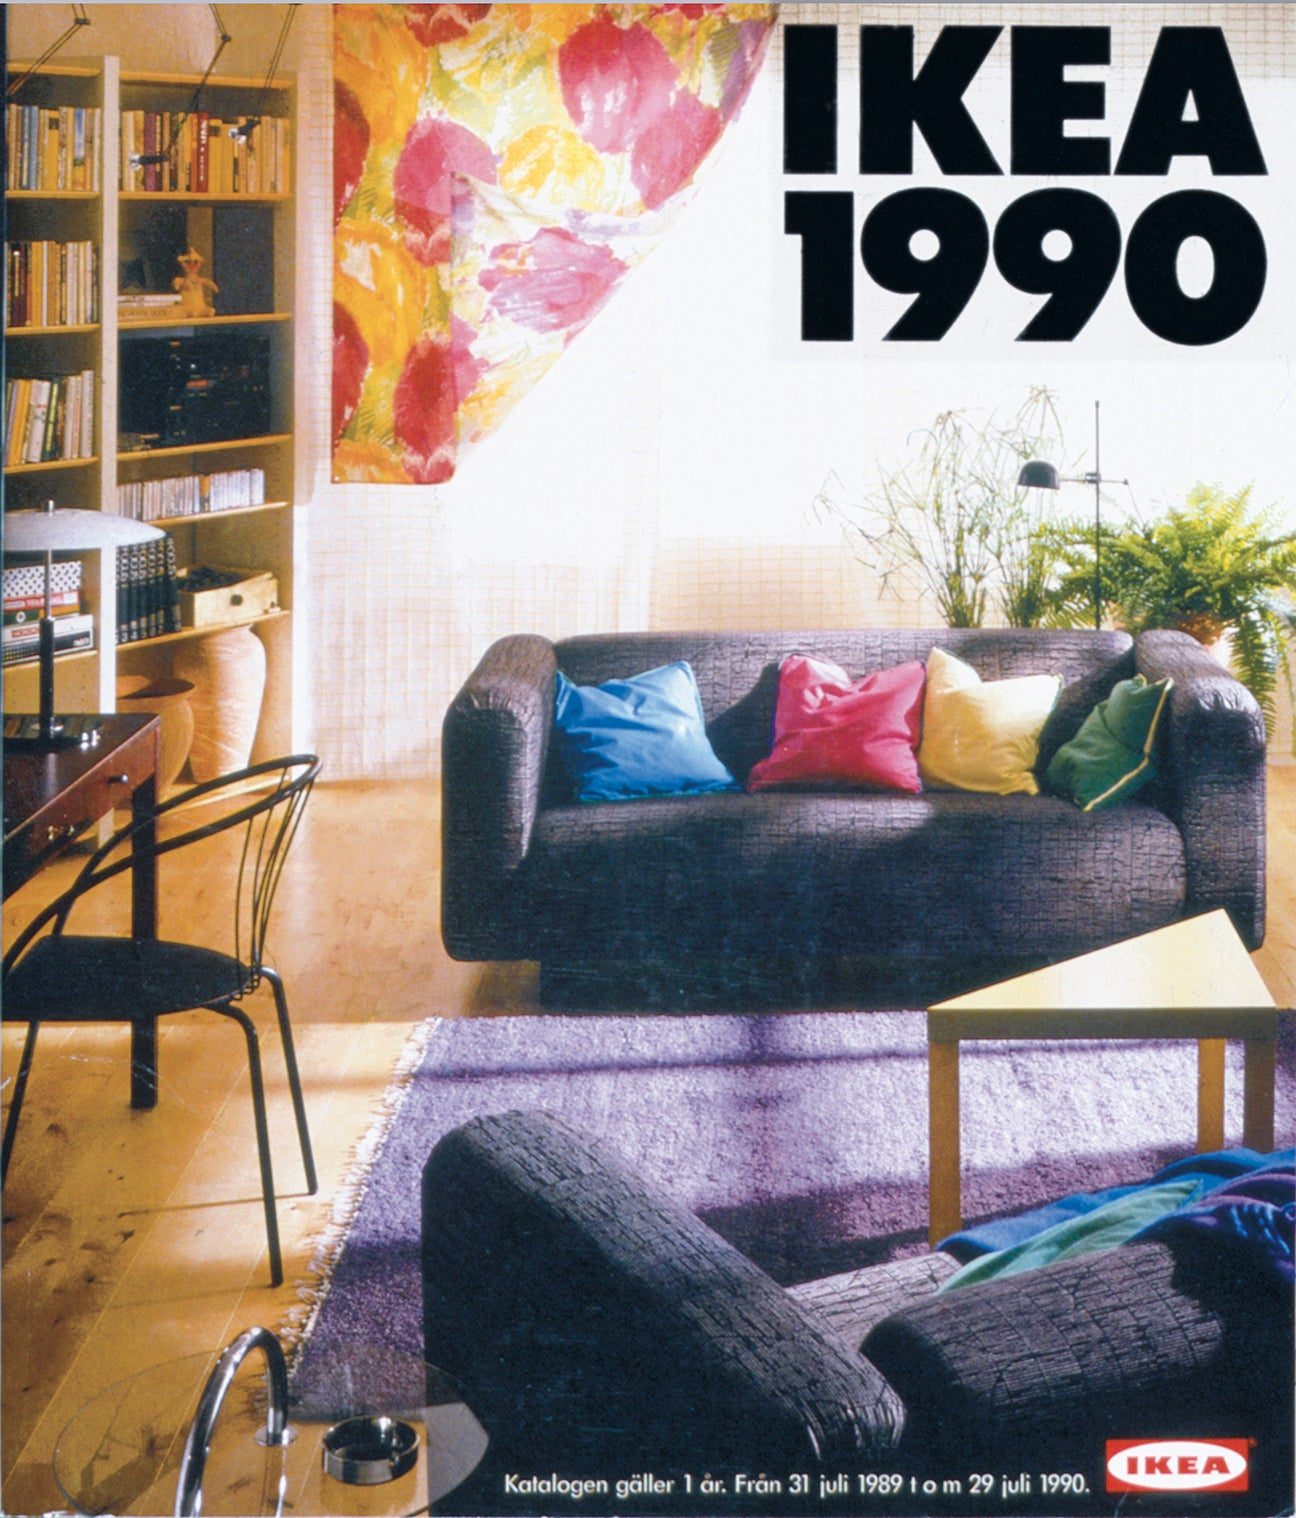 old ikea catalogue cover featuring a living room with grey sofas